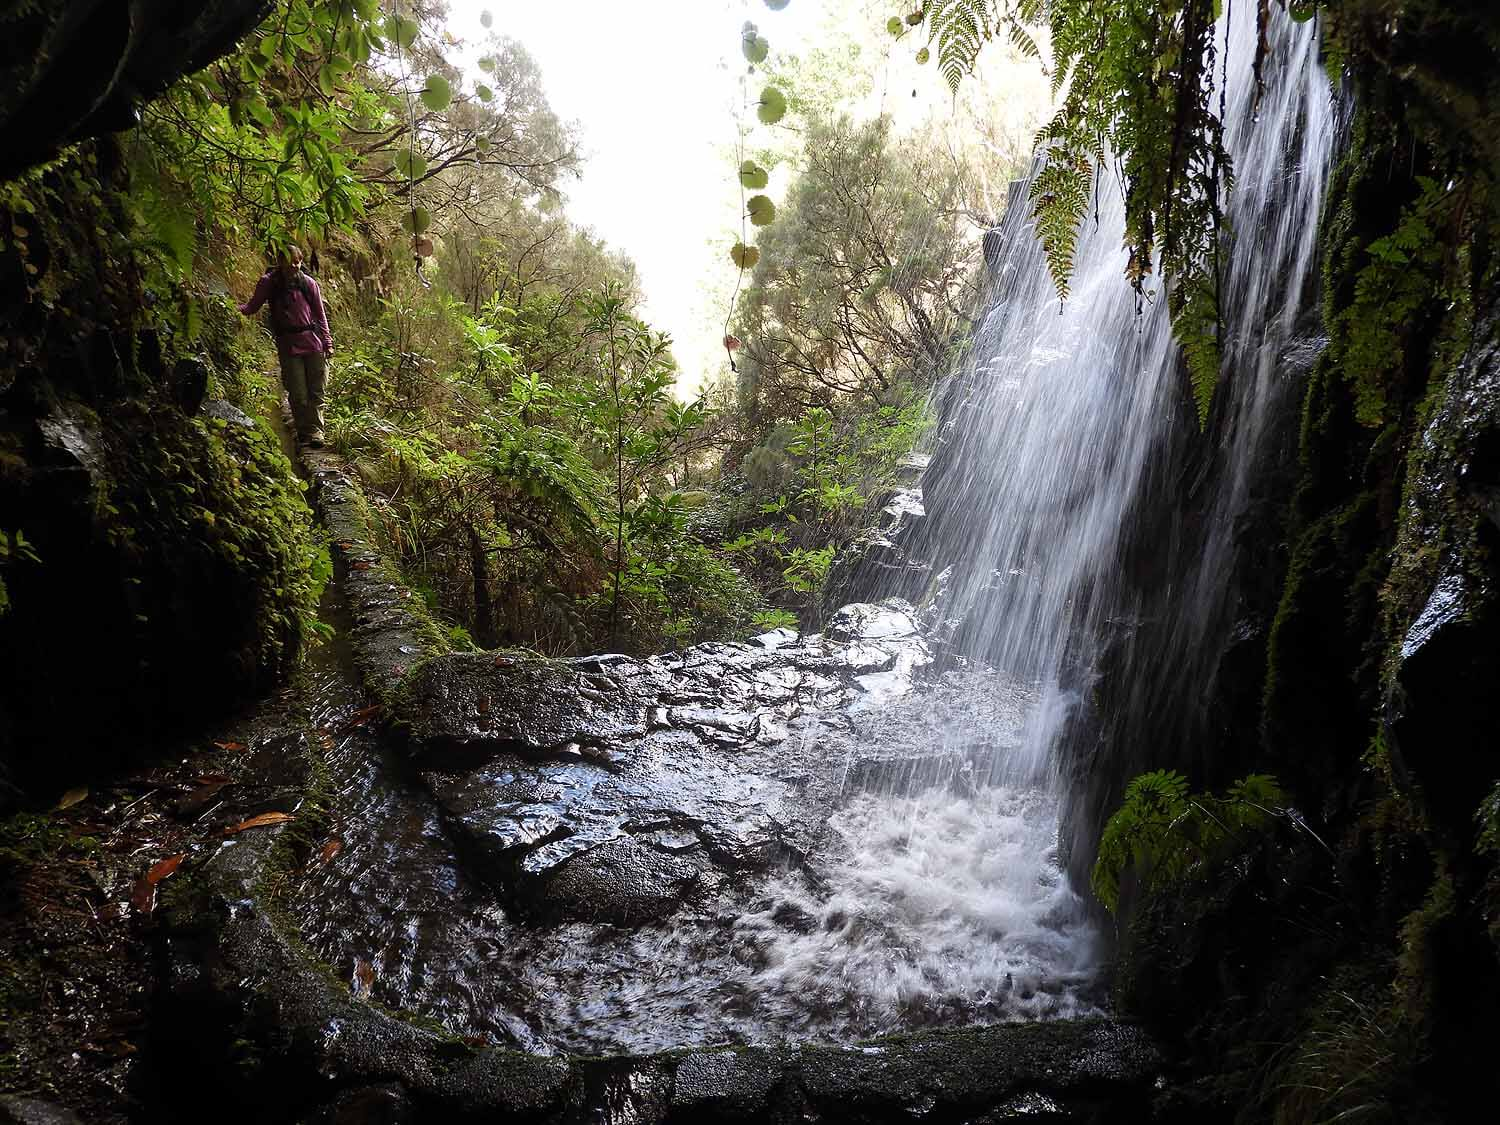 portugal-madeira-levada-25-fonts-curvy-canal-water.JPG